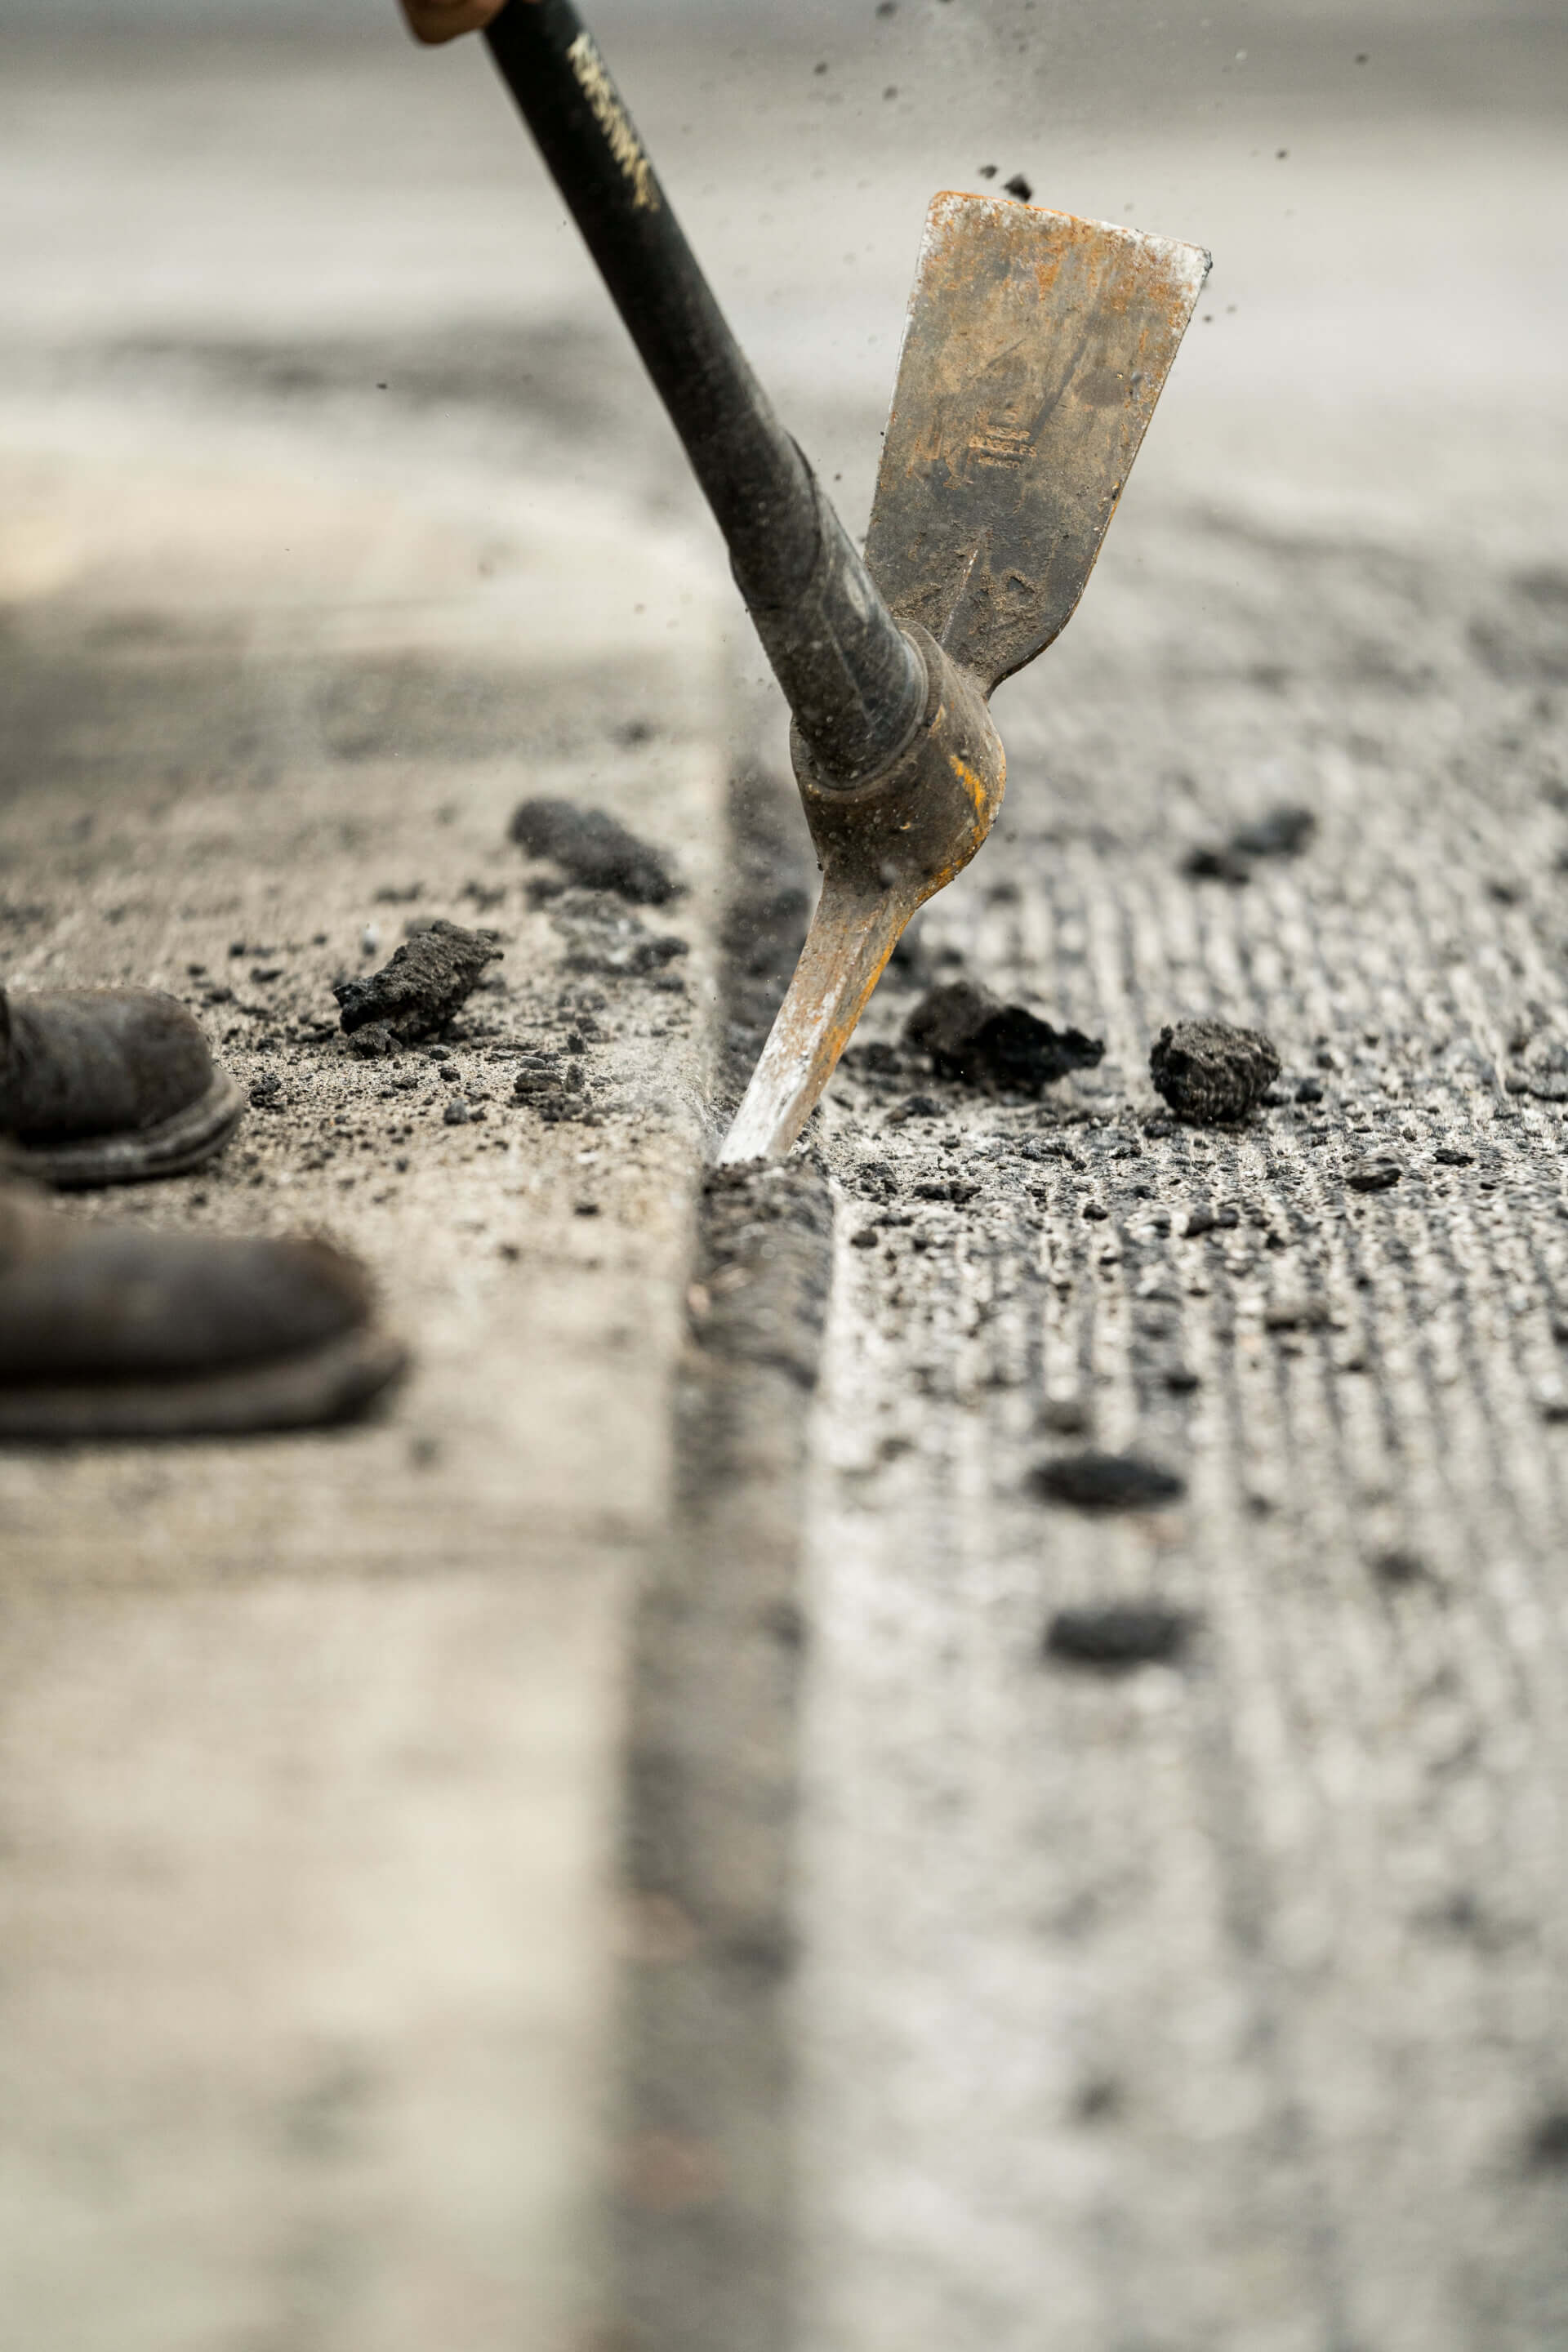 milling and paving process